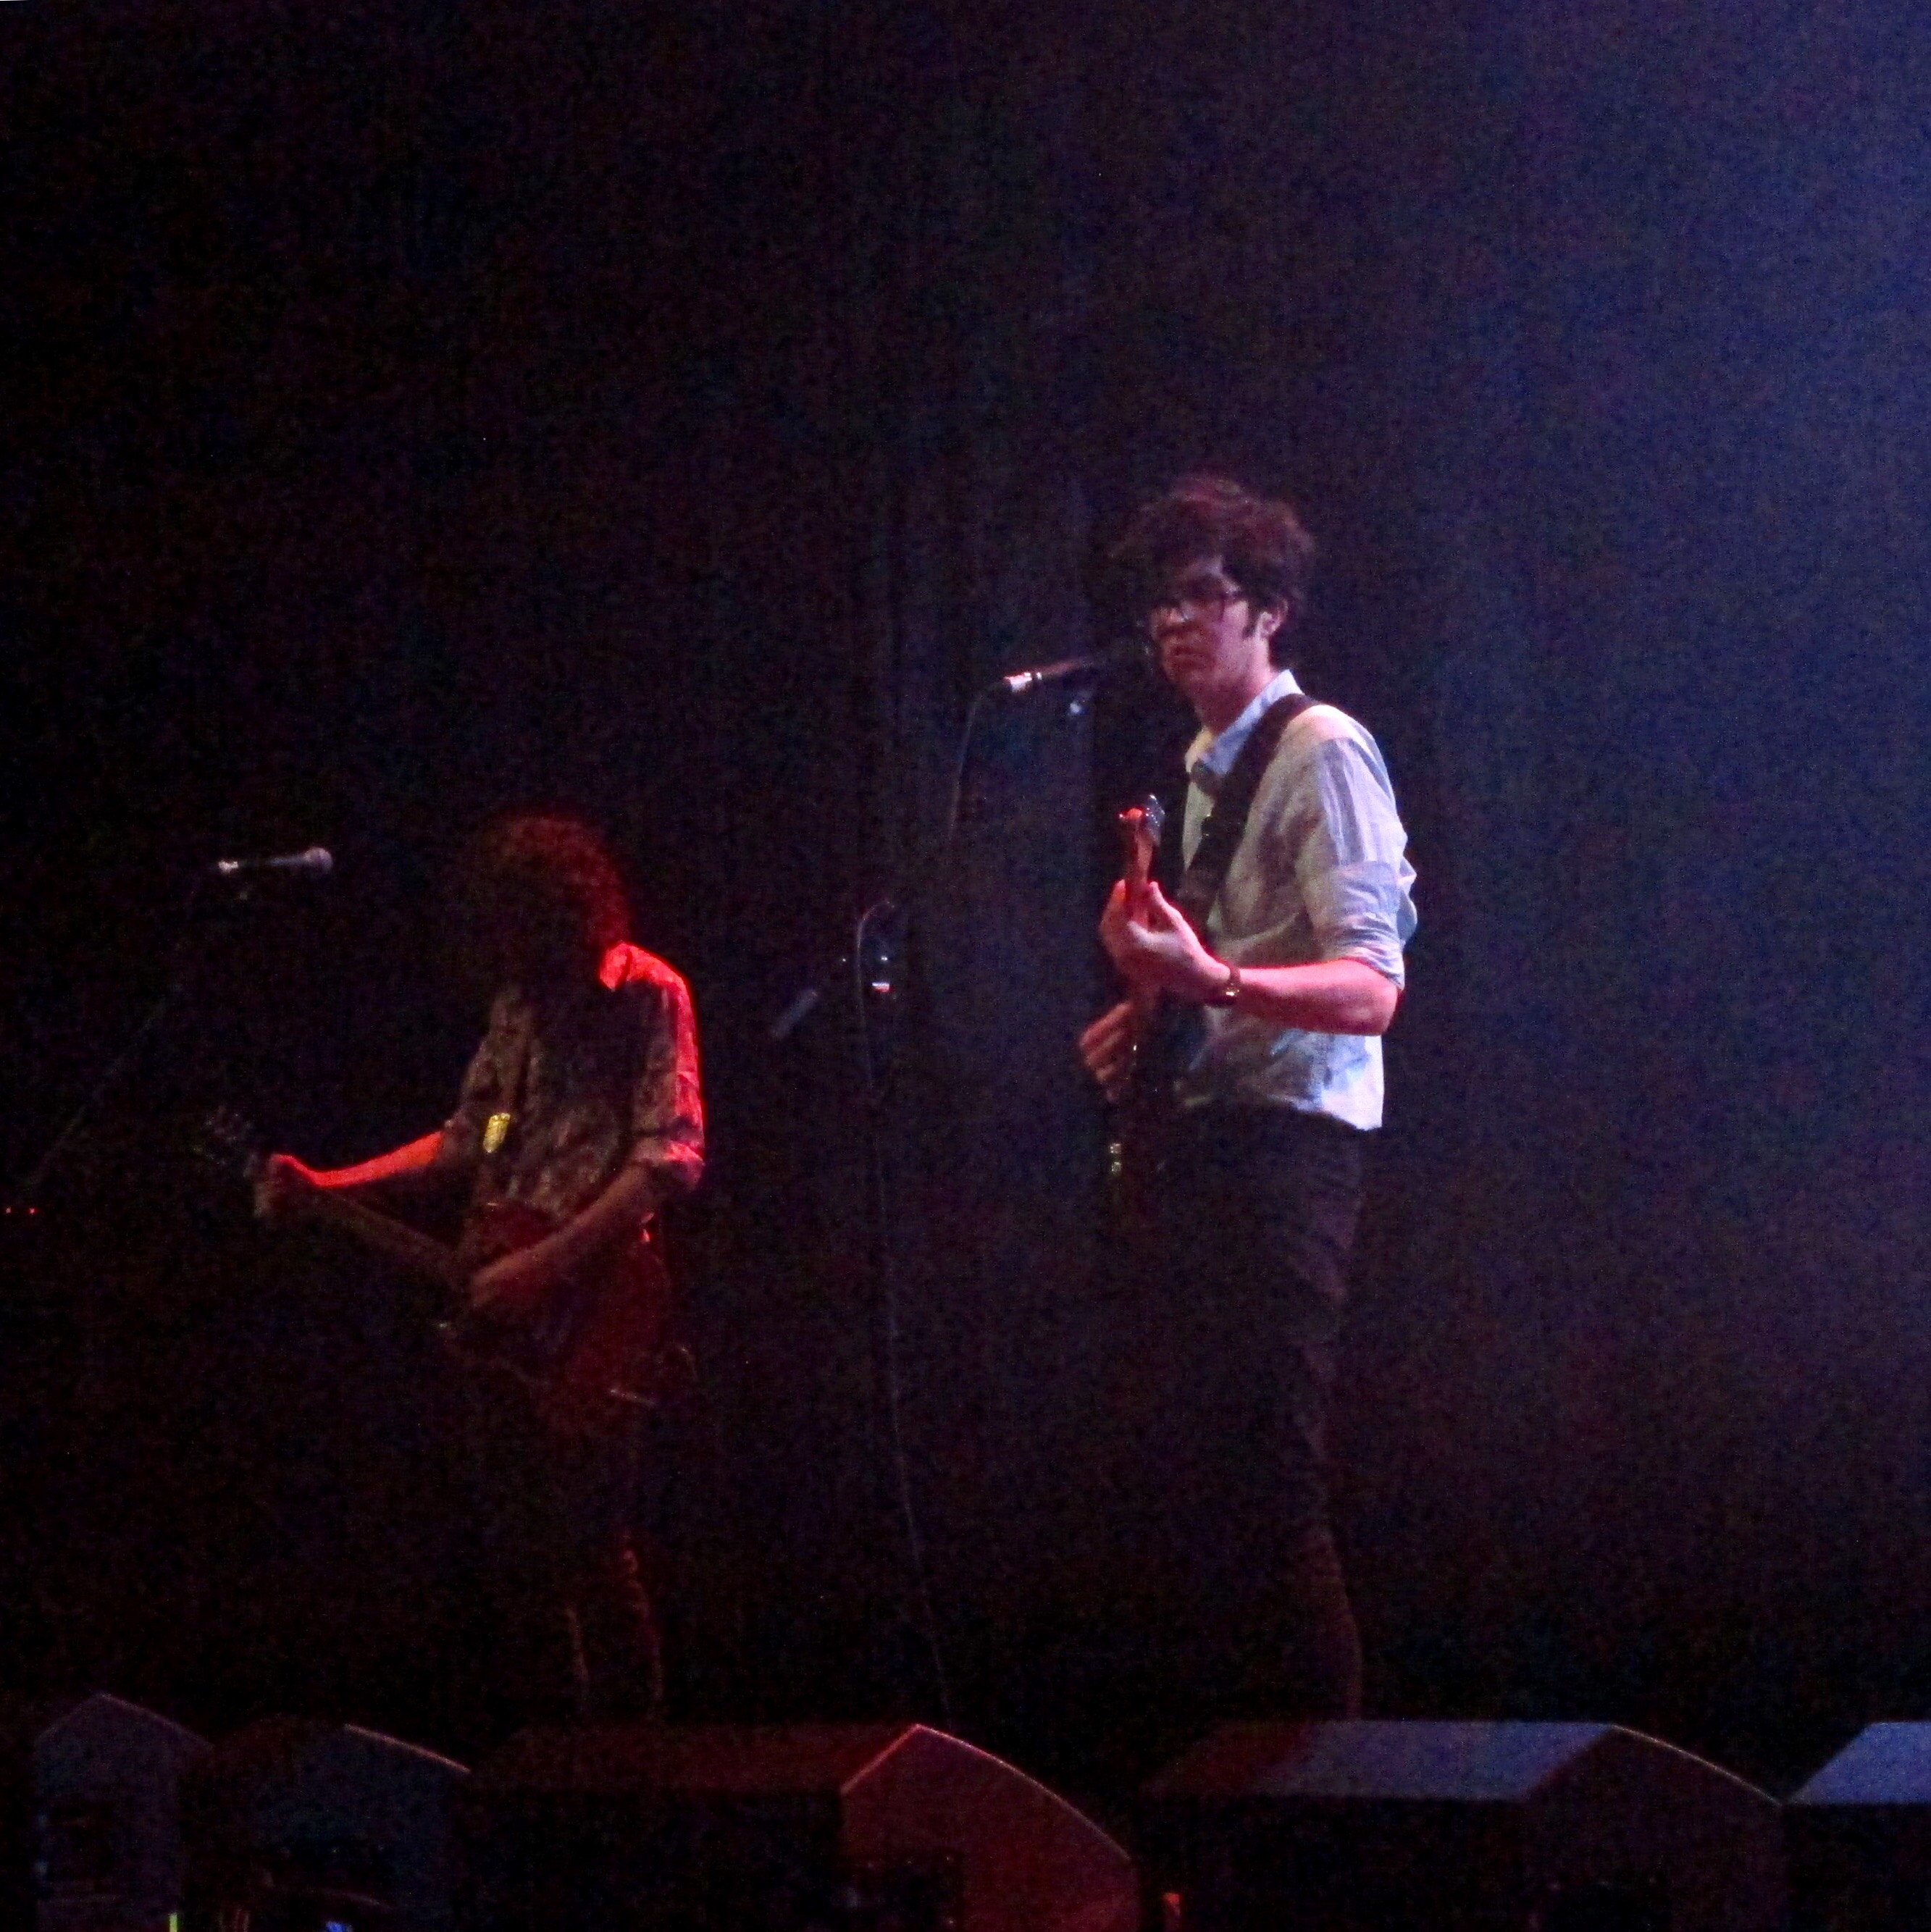 Car Seat Headrest Steps Up As Headliner Live At The Forum Every